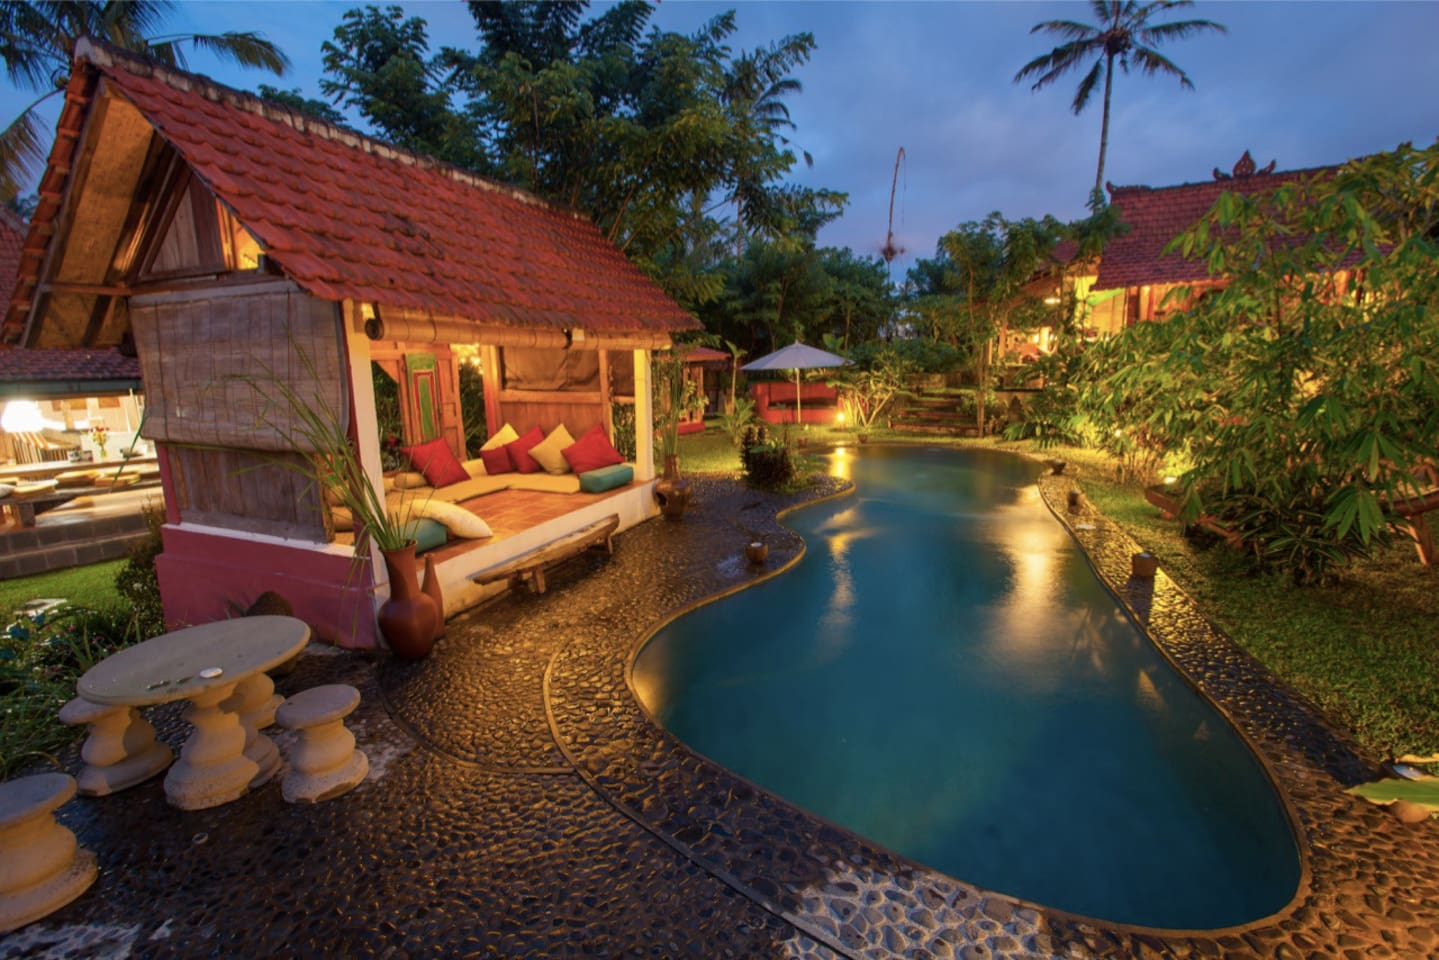 Hati Suci: Rustic Luxury Sanctuary